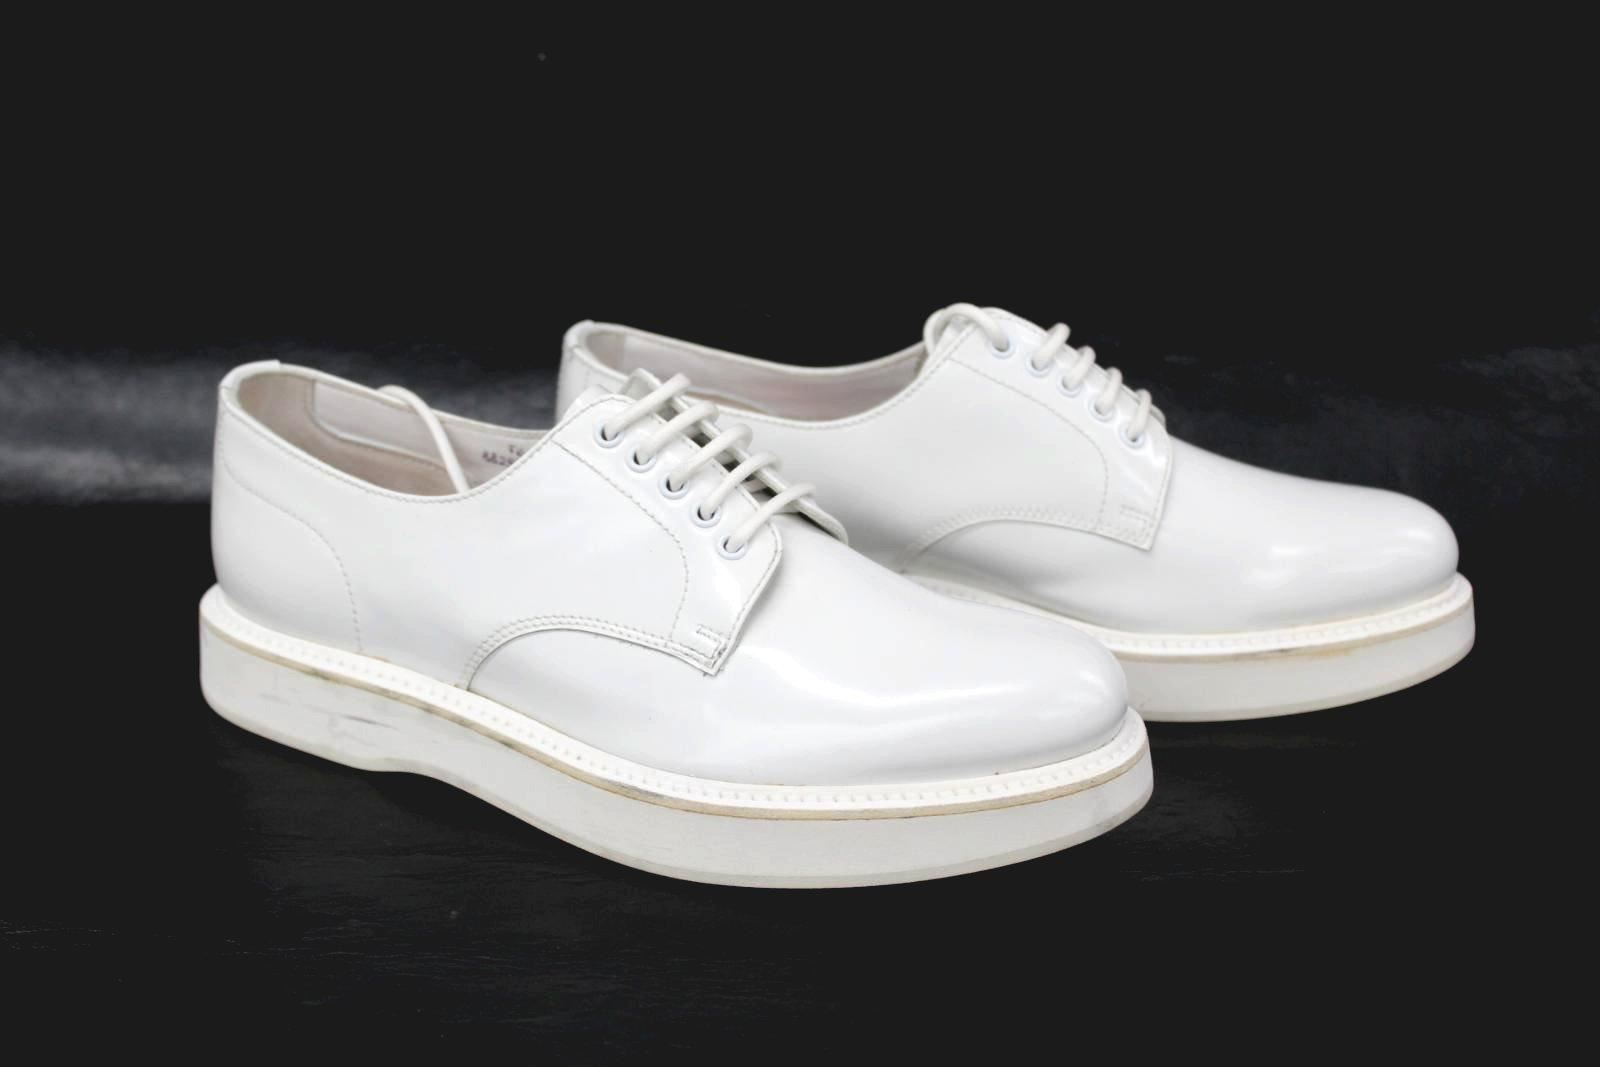 CHURCH-039-S-Felicia-Ladies-White-Leather-Lace-Up-Wedge-Derby-Shoes-UK3-EU35-5